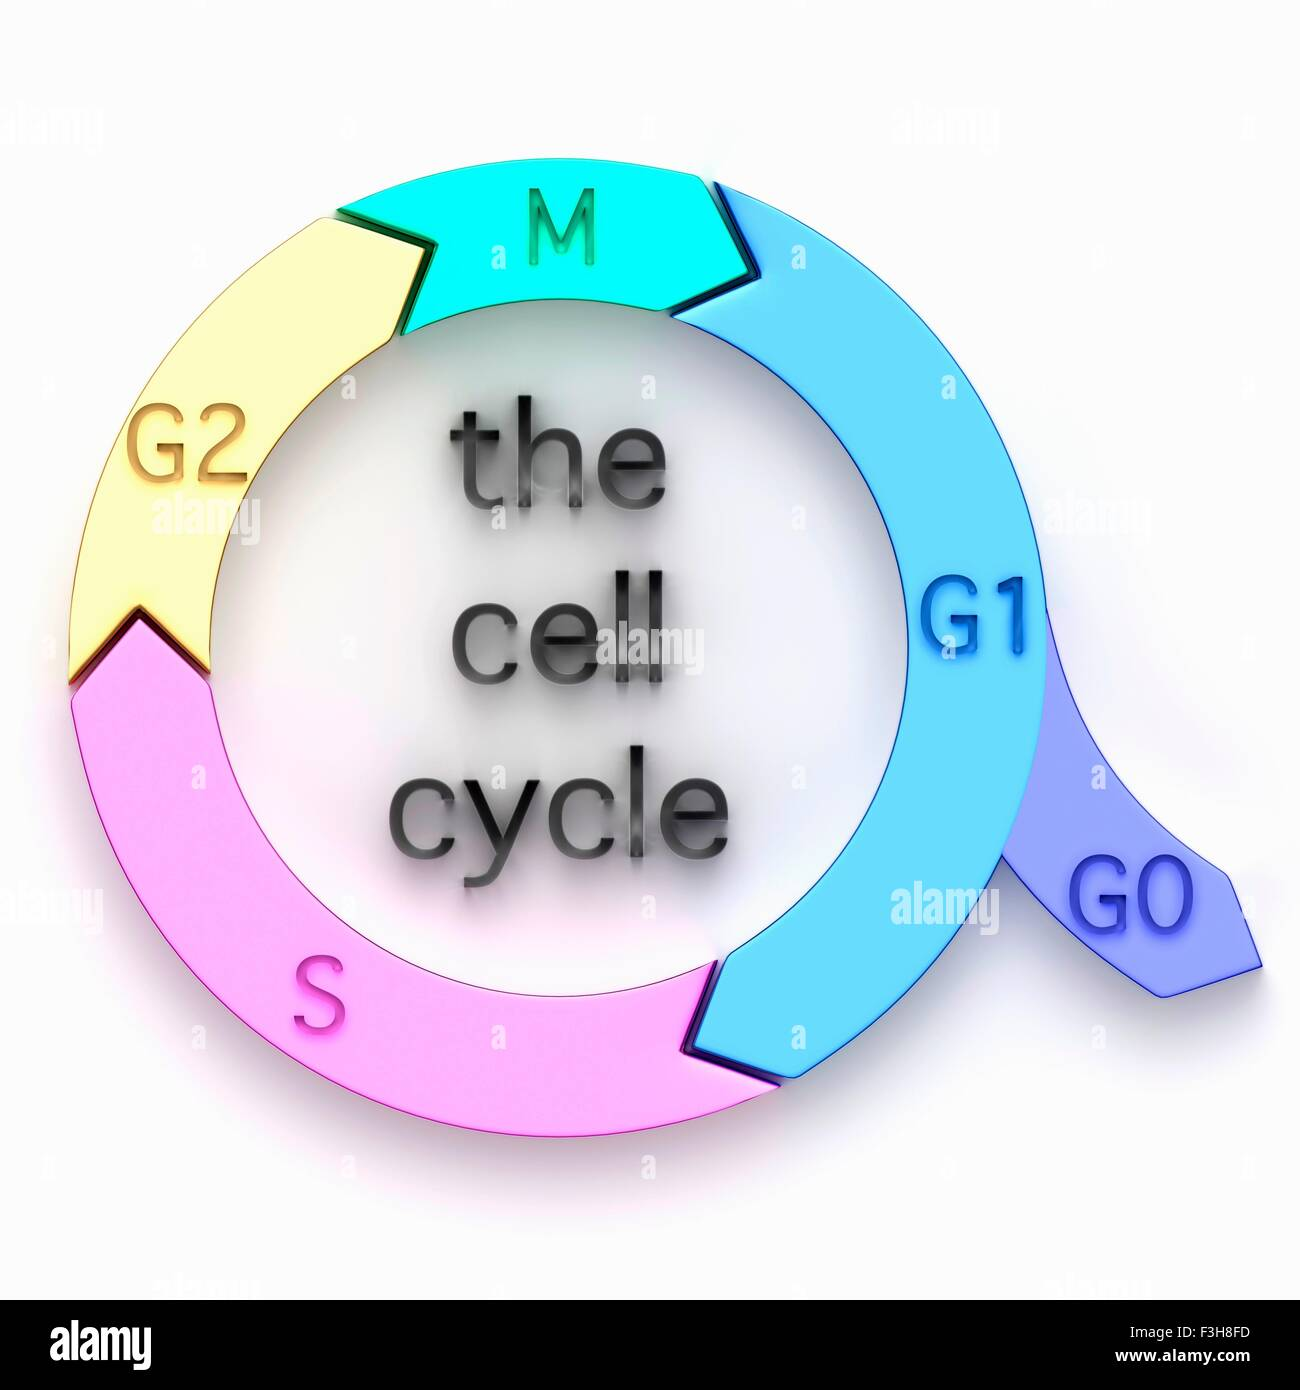 Cell division diagram stock photos cell division diagram stock illustration of the biological cell cycle stock image ccuart Choice Image